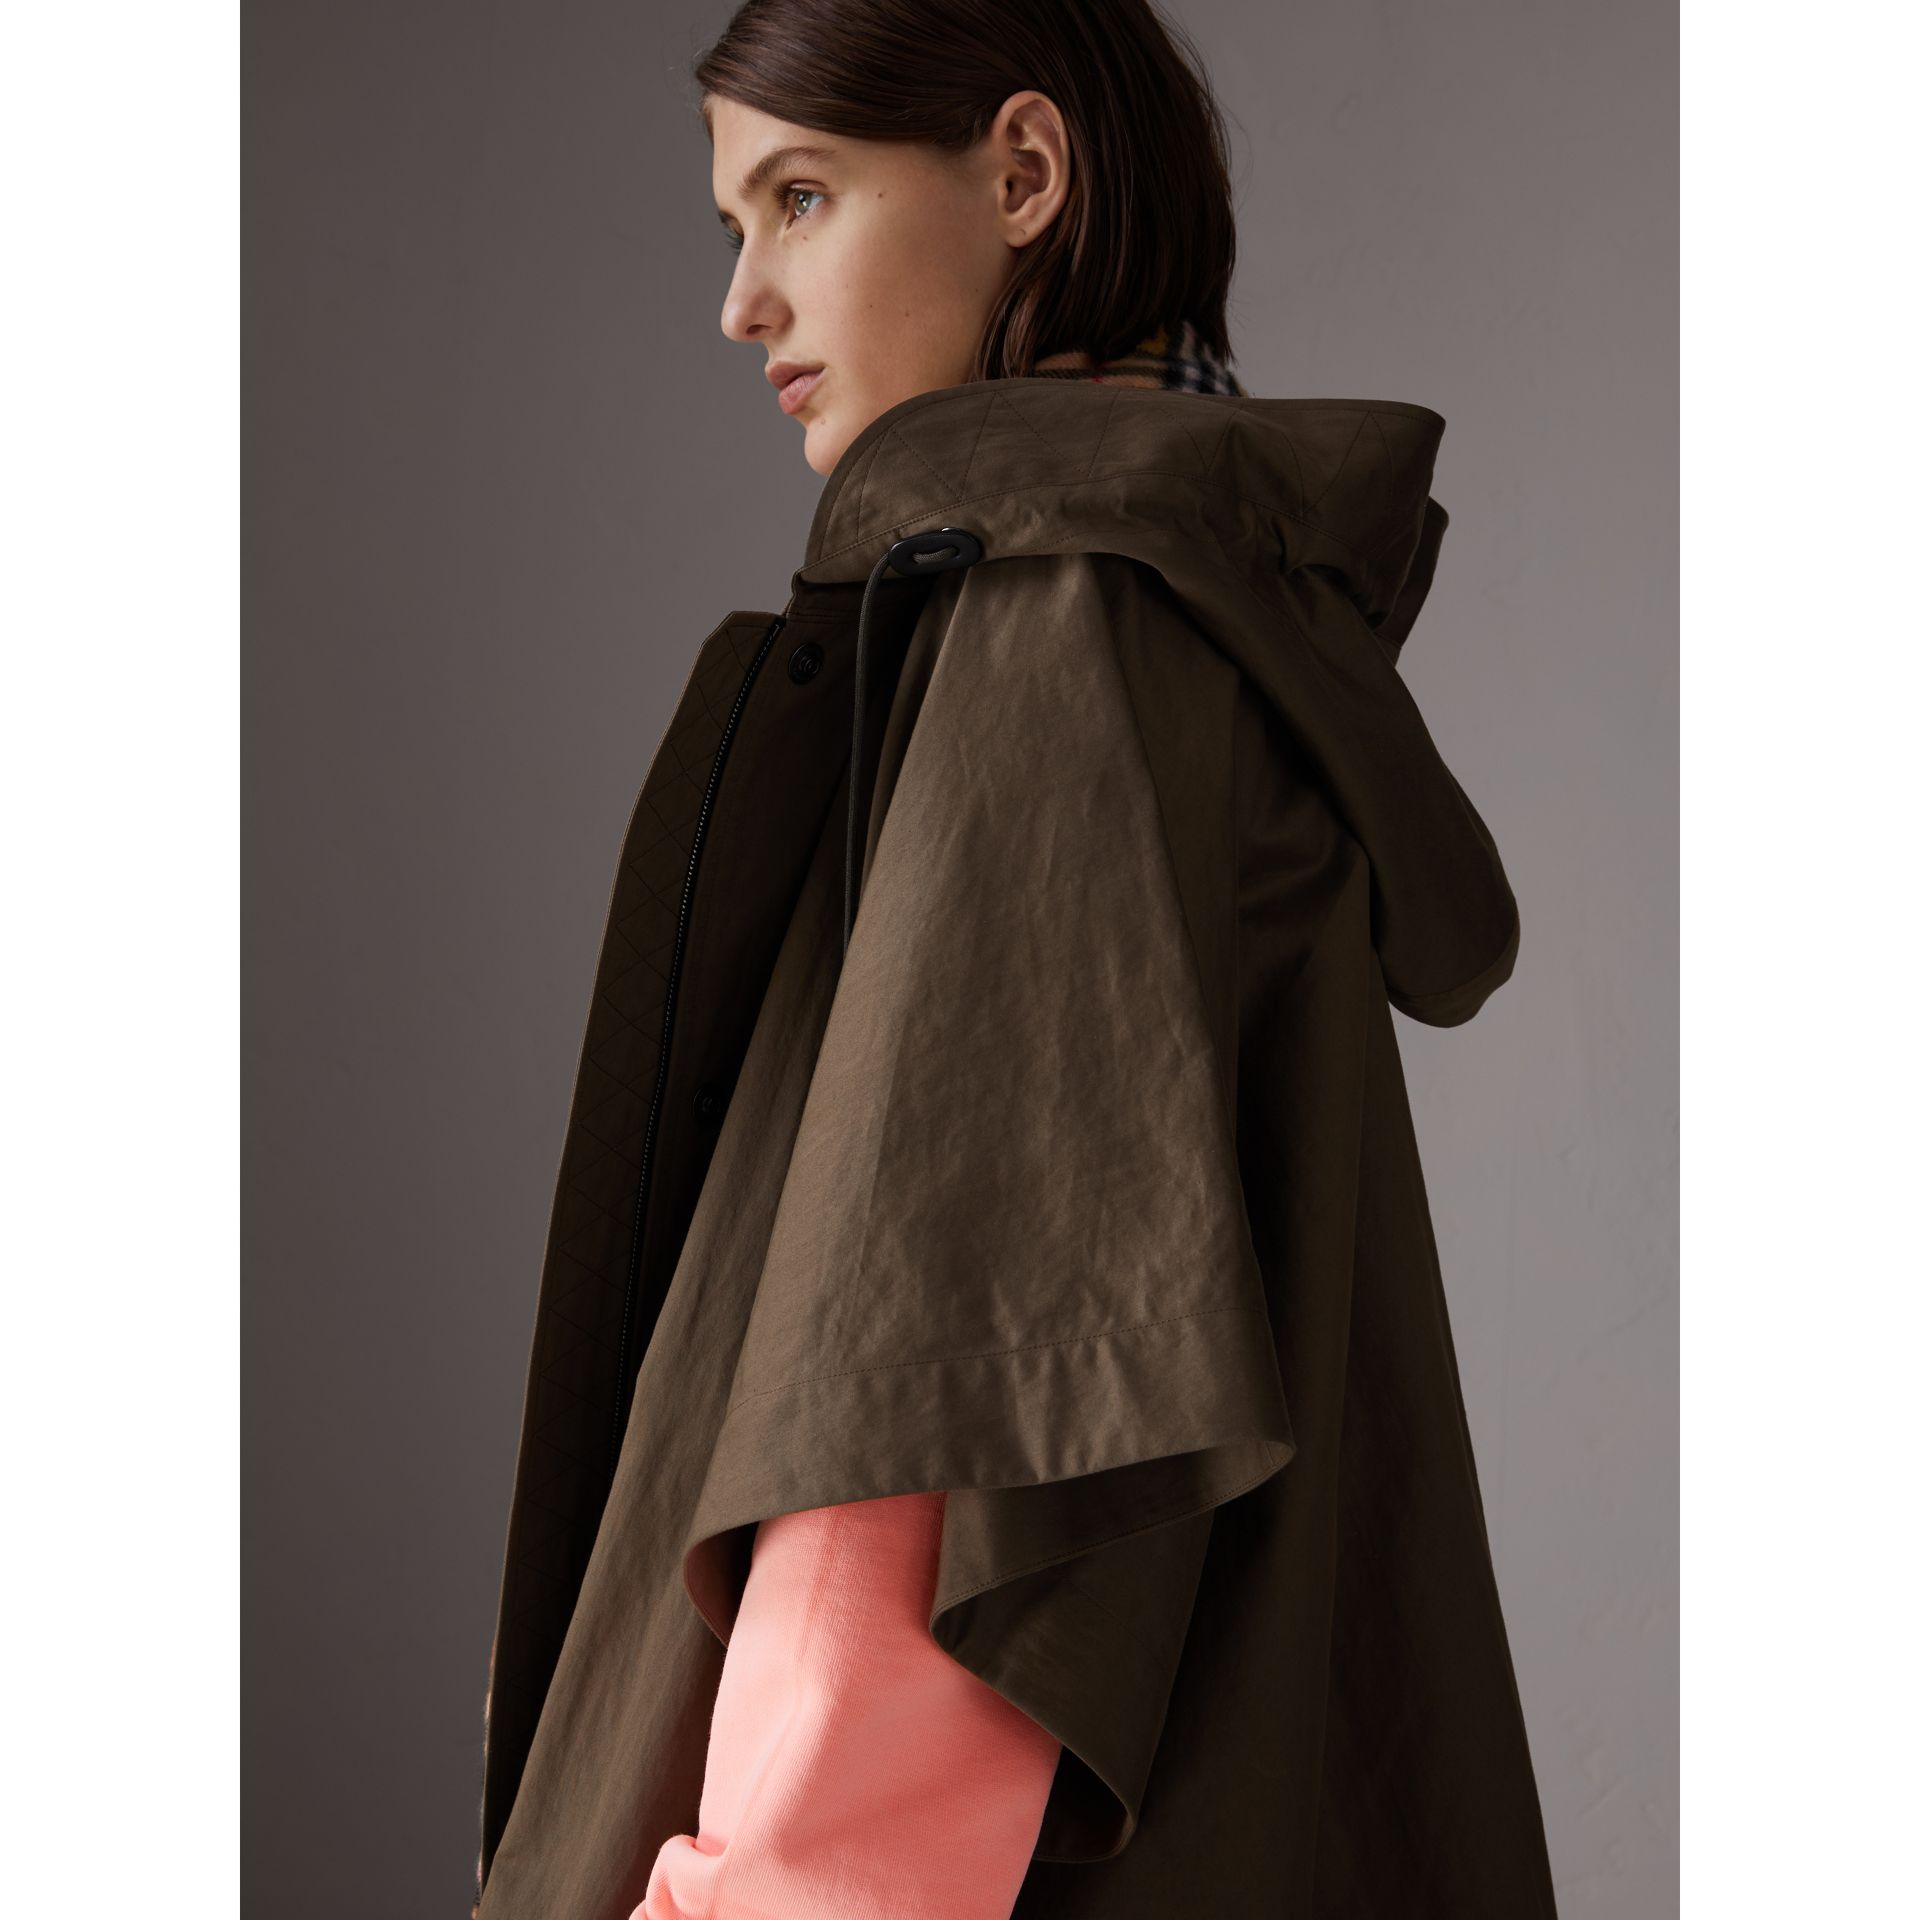 Showerproof Oversized Parka Cape in Dark Olive - Women | Burberry - gallery image 4